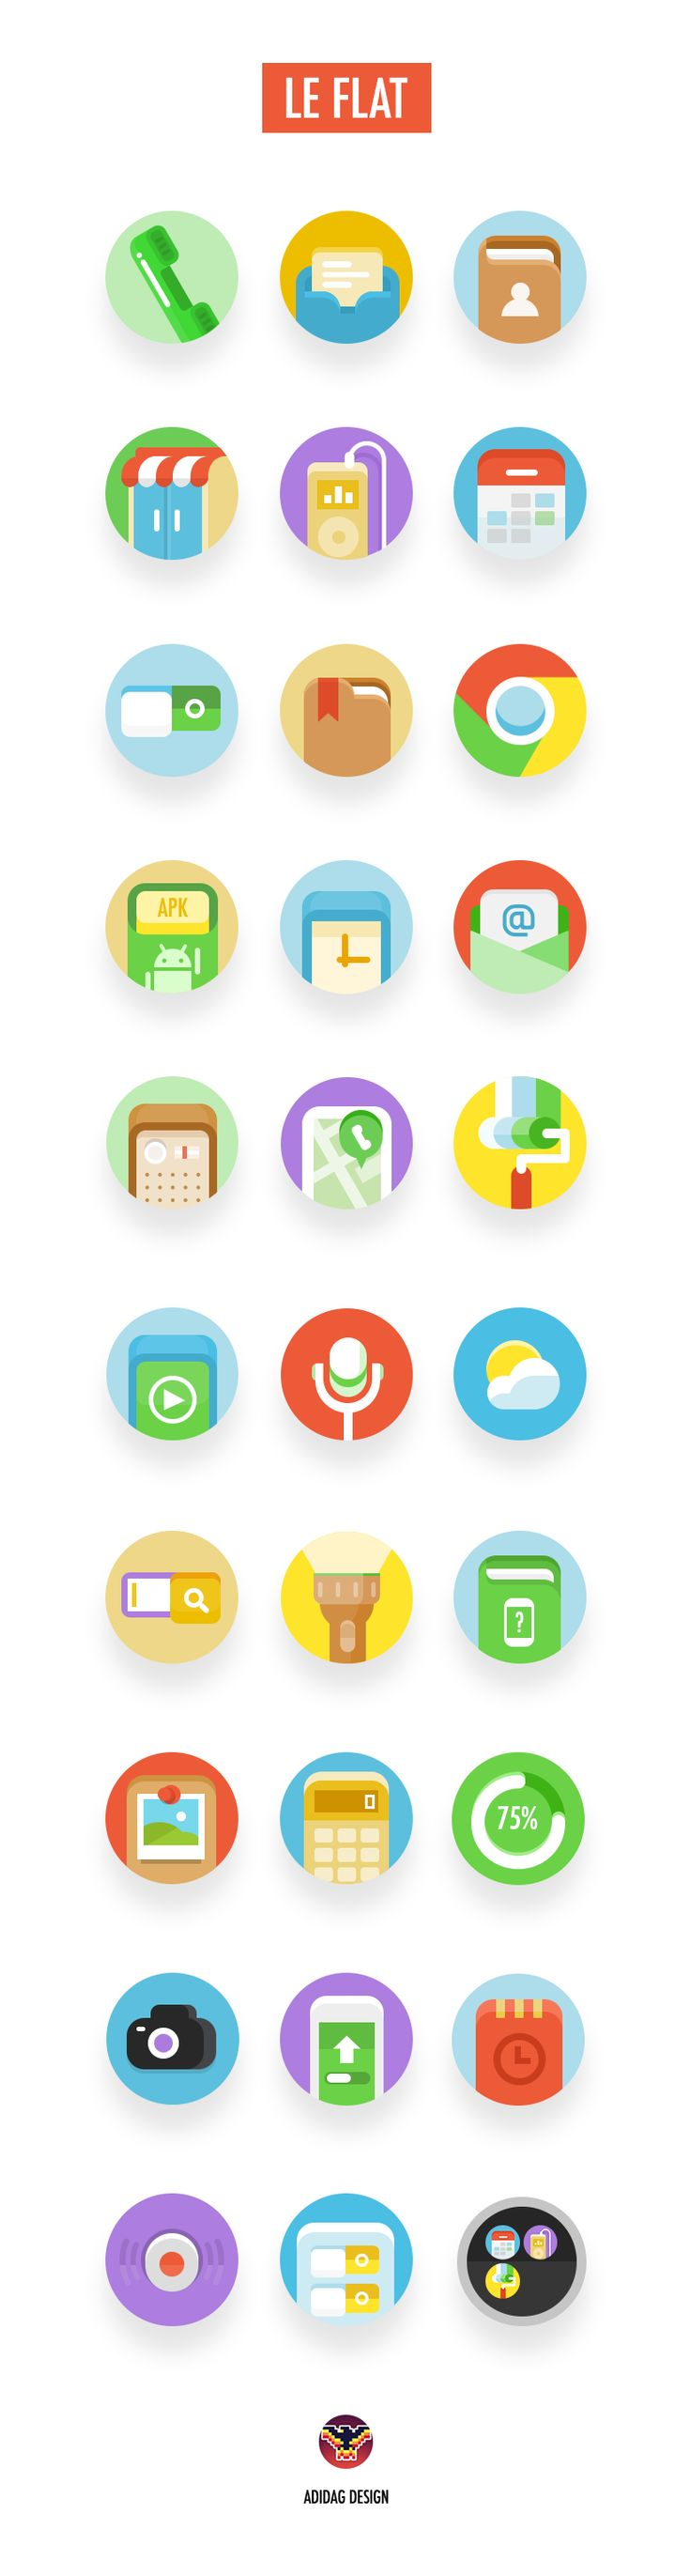 Flat Icons / Flat Design / Icons / LEFLAT for lenovo by ADIDAG